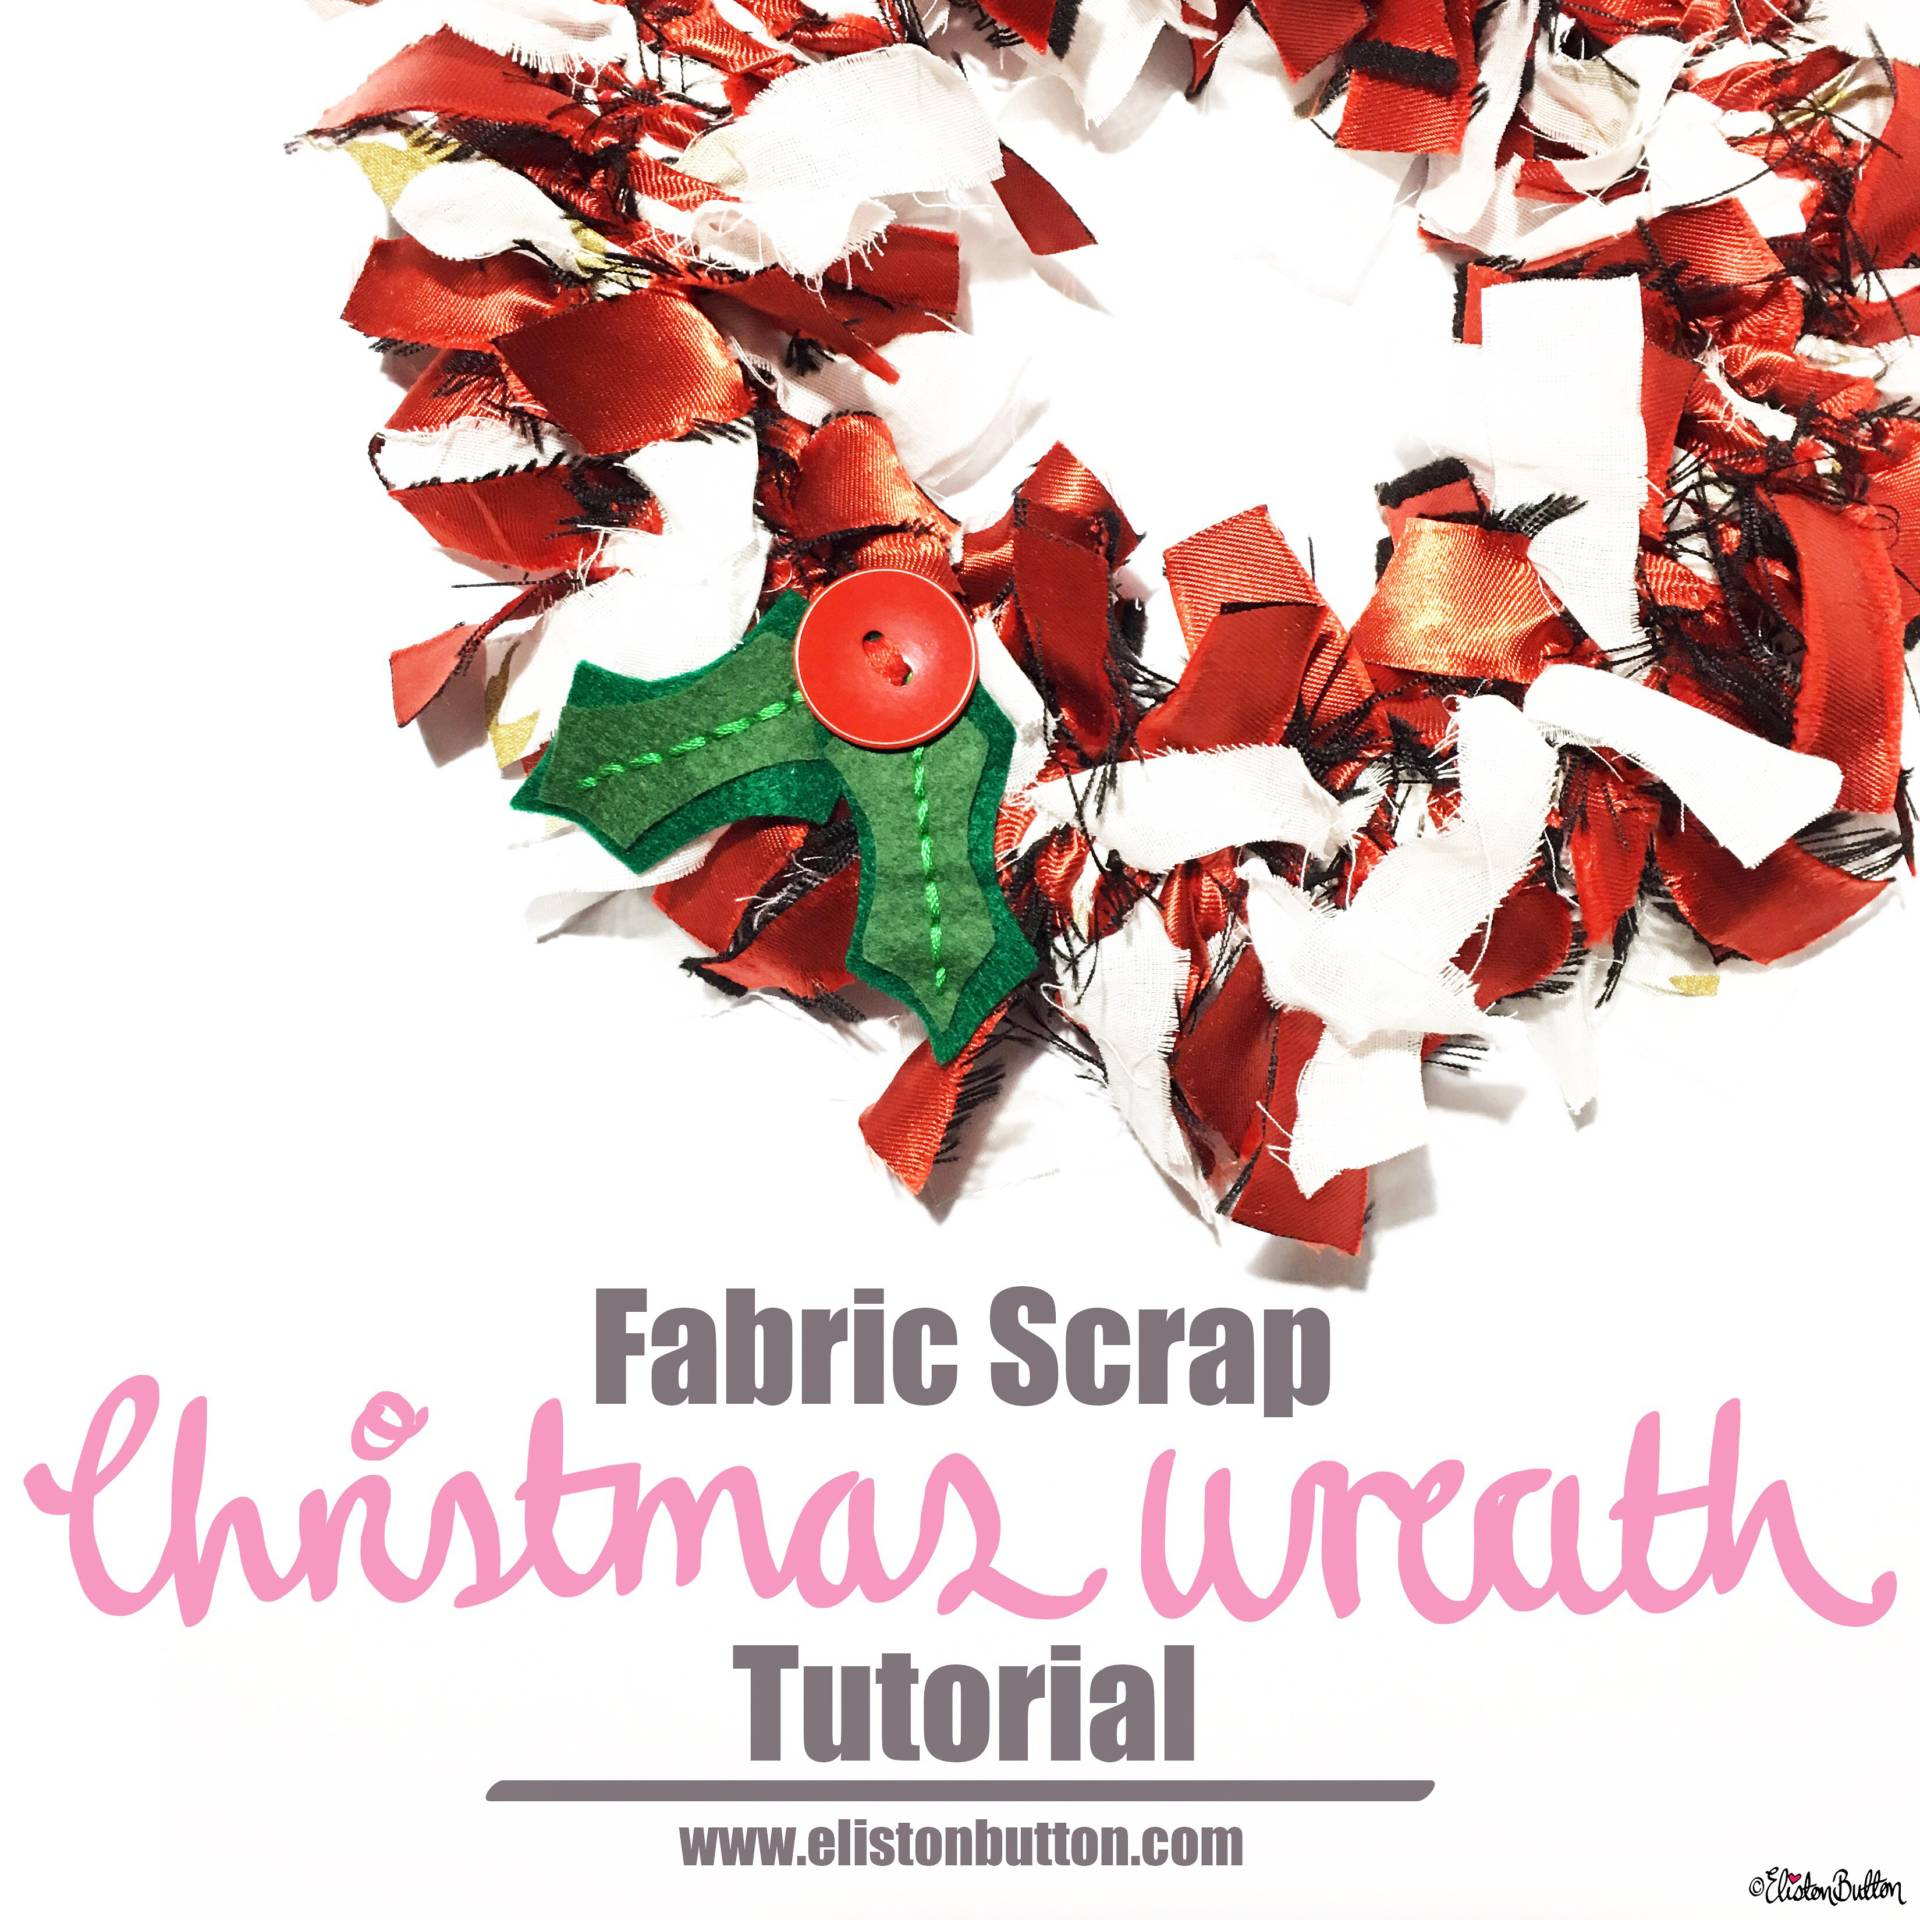 Fabric Scrap Christmas Wreath Tutorial by Eliston Button Instagram Square - For the Love of…Christmas at www.elistonbutton.com - Eliston Button - That Crafty Kid – Art, Design, Craft & Adventure.